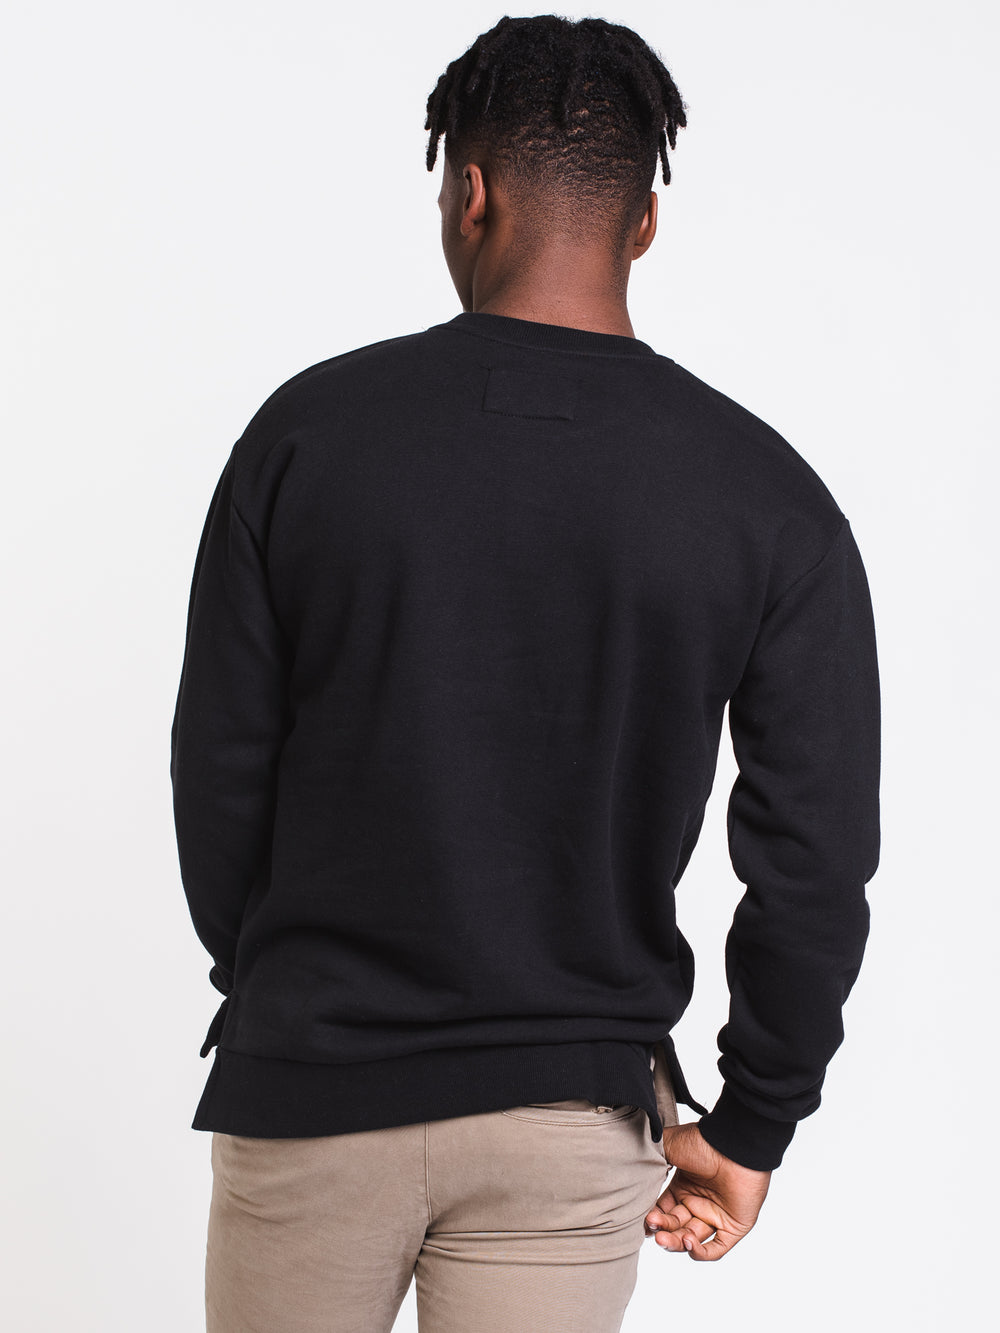 MENS FLINTLOCK CREW - BLACK